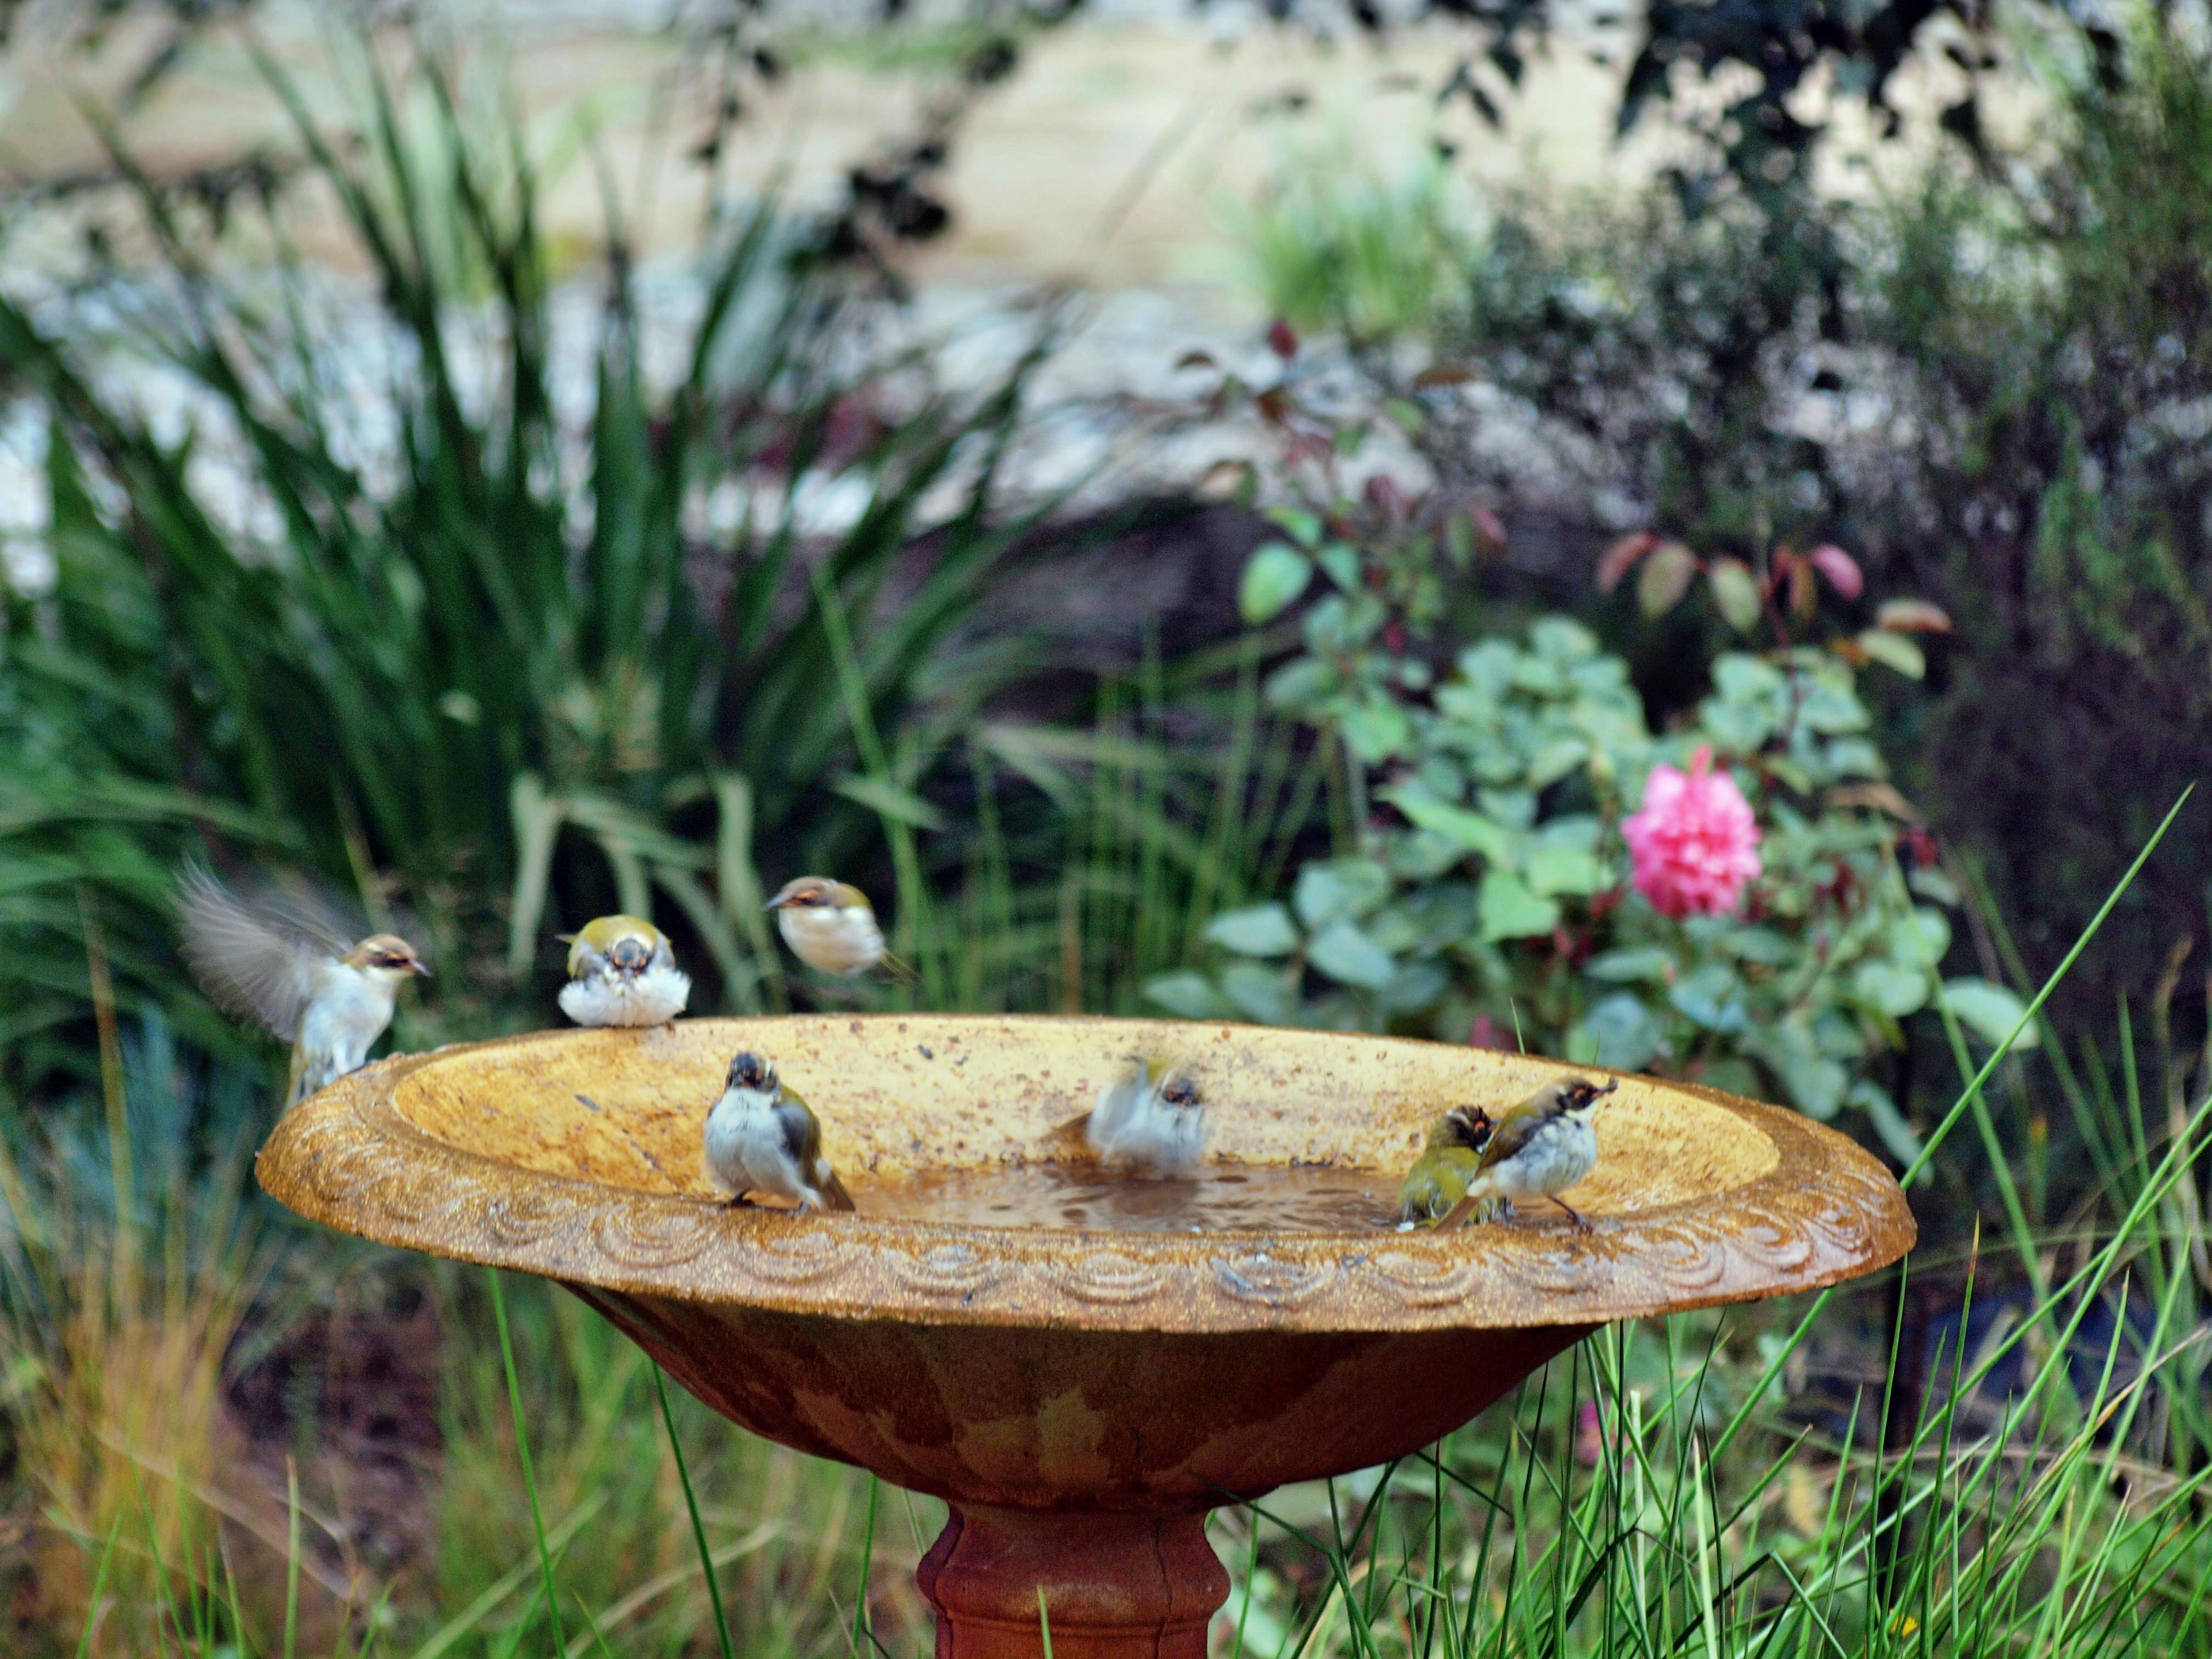 Bird-bath-35.jpeg